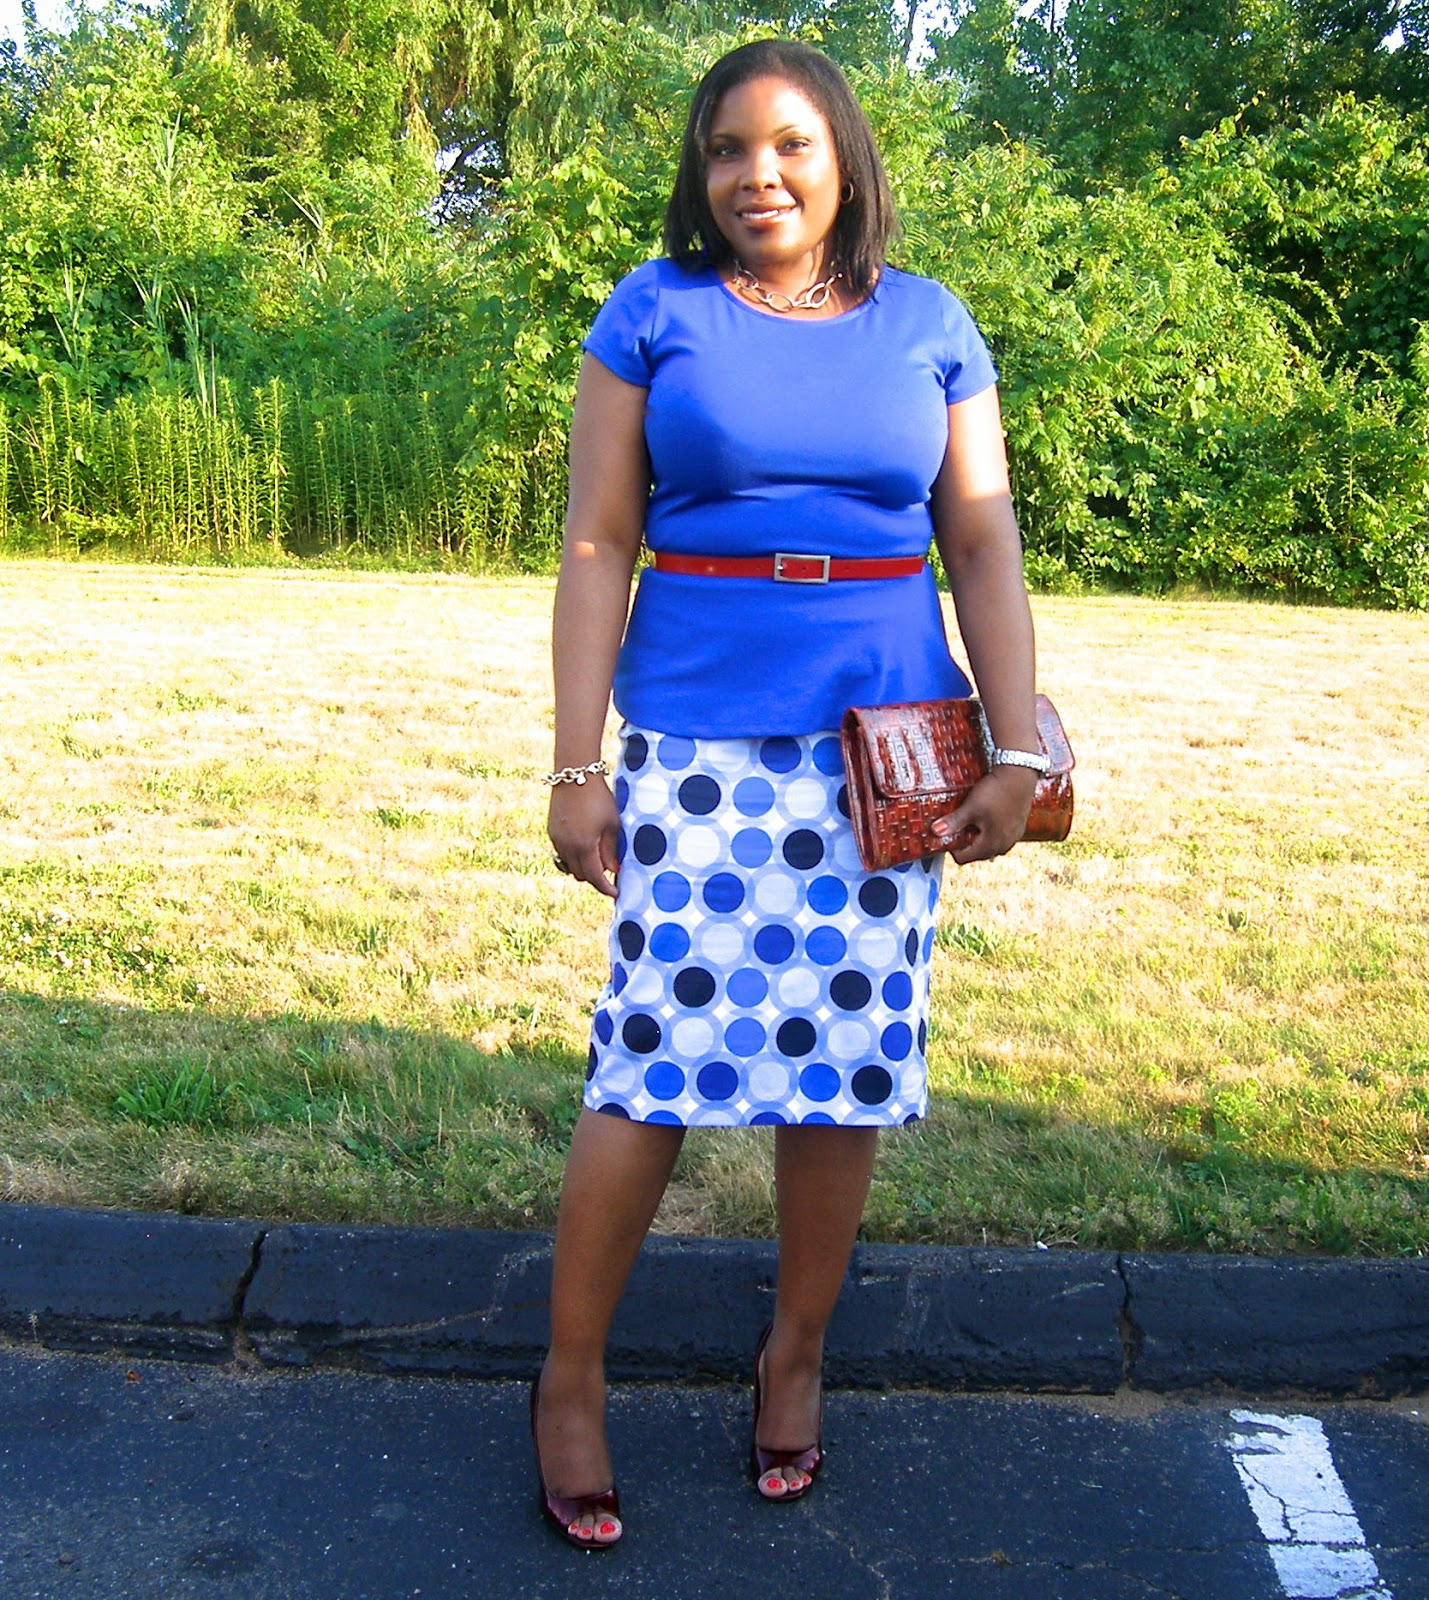 Limited peplum top, cobalt blue, fashion blogger, blue circles skirt